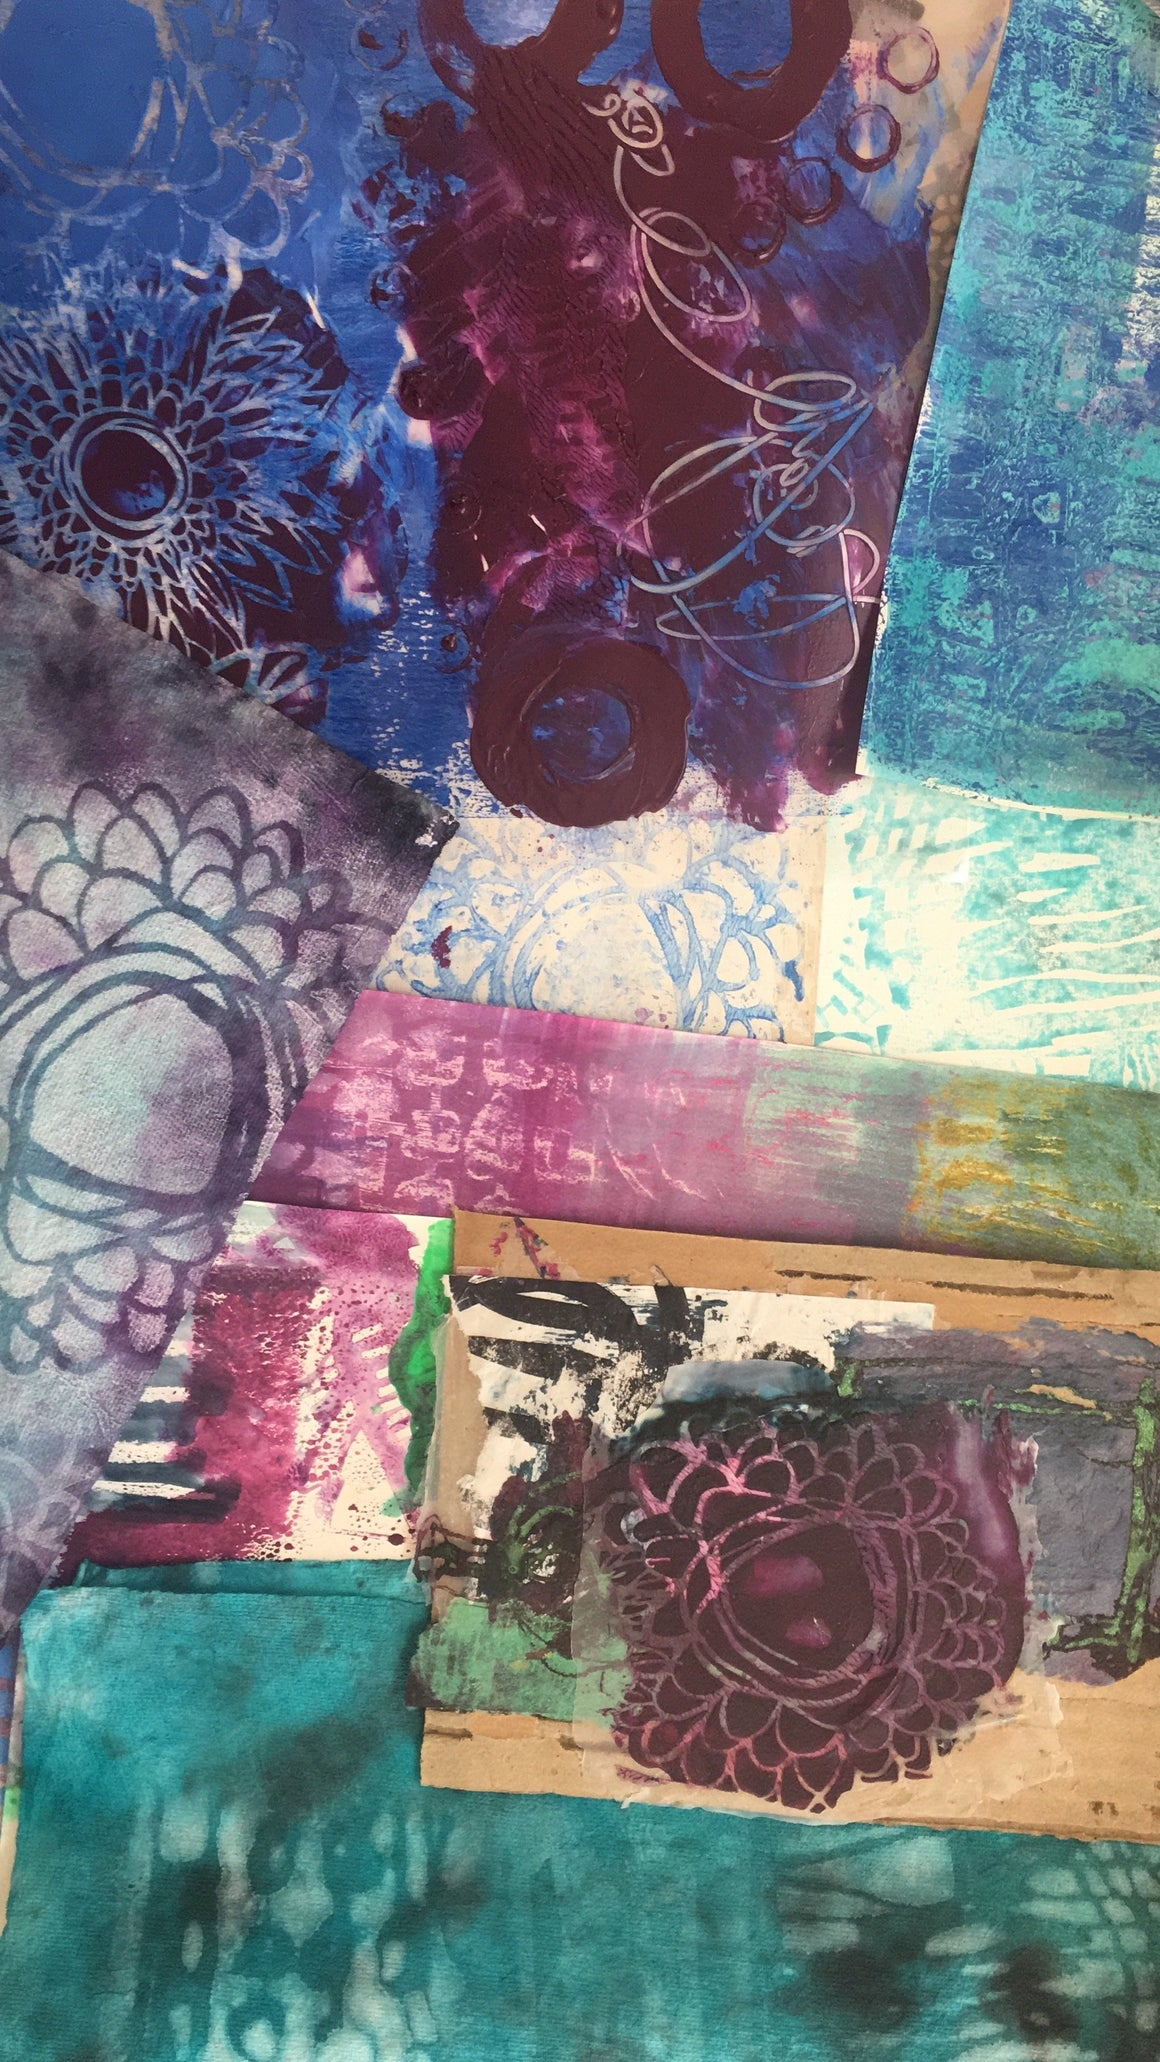 hand painted papers, acrylic skins and distressed collage from Traci Bautista's SOULFUL SCRIBBLES online workshop series